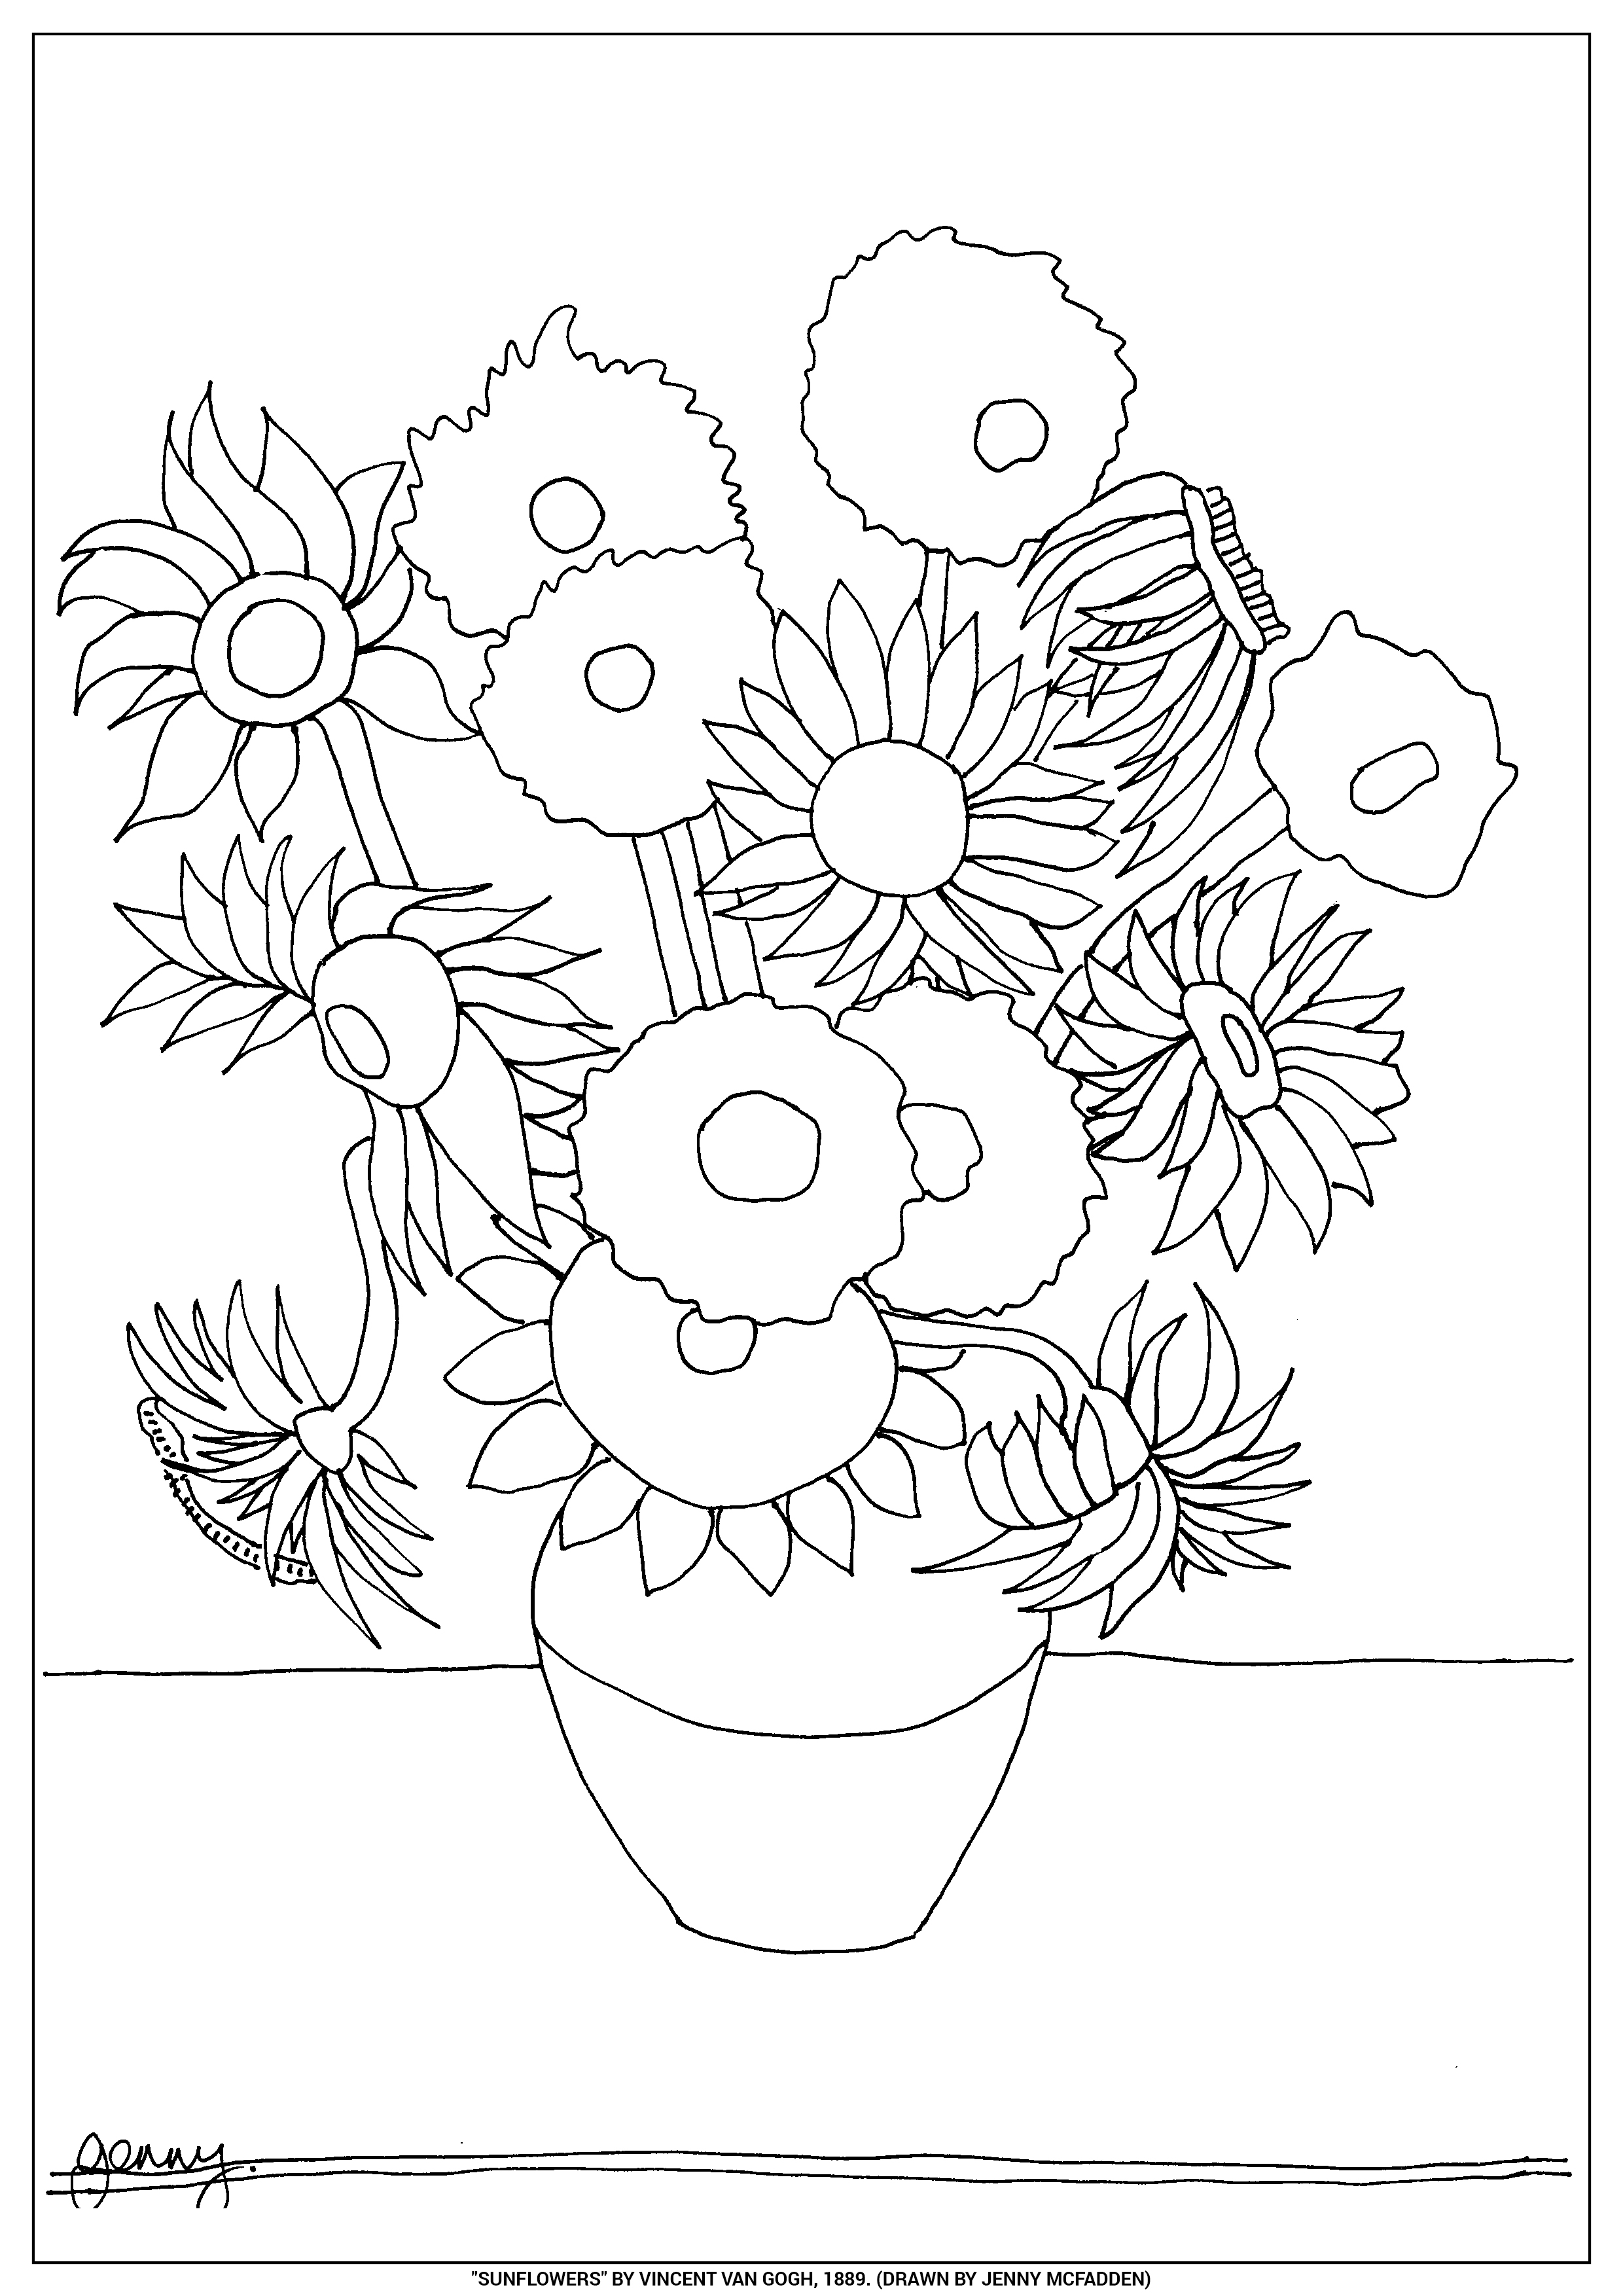 van goghs sunflowers coloring pages | Sunflower Drawing Template at GetDrawings.com | Free for ...